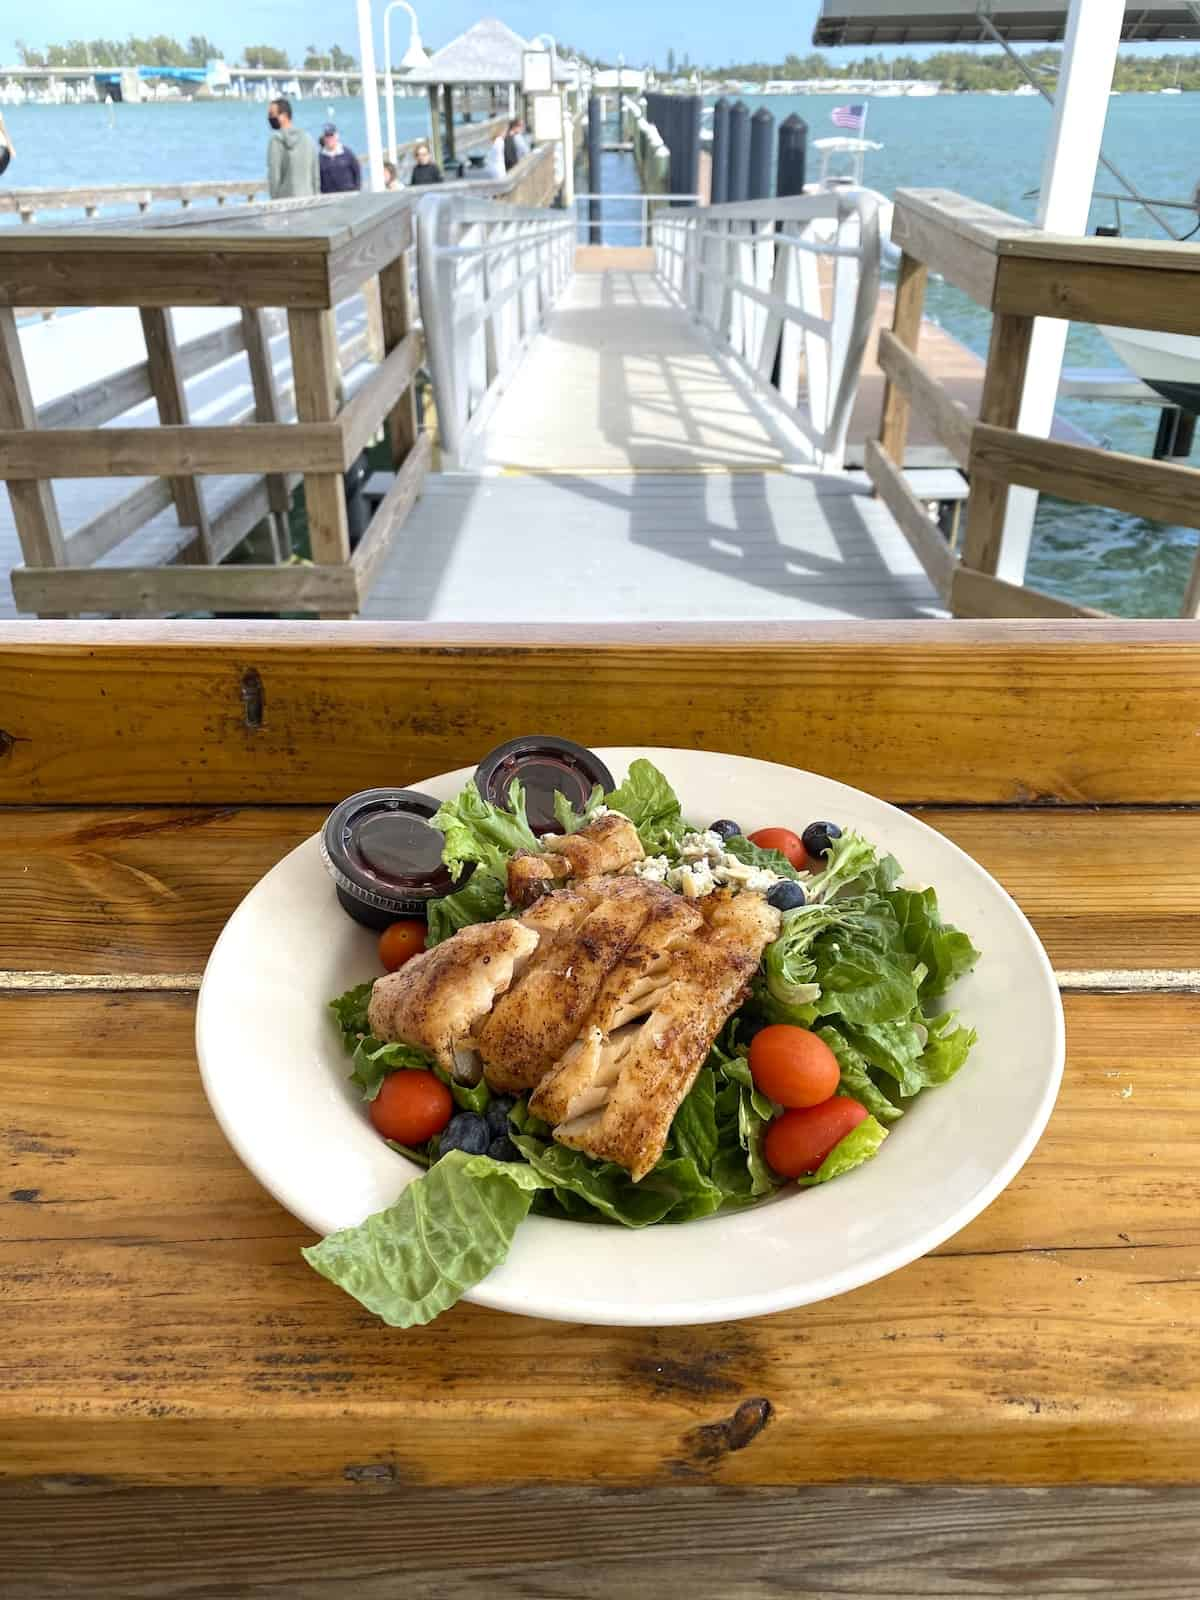 Grouper on a salad in a white bowl on a wood bar.